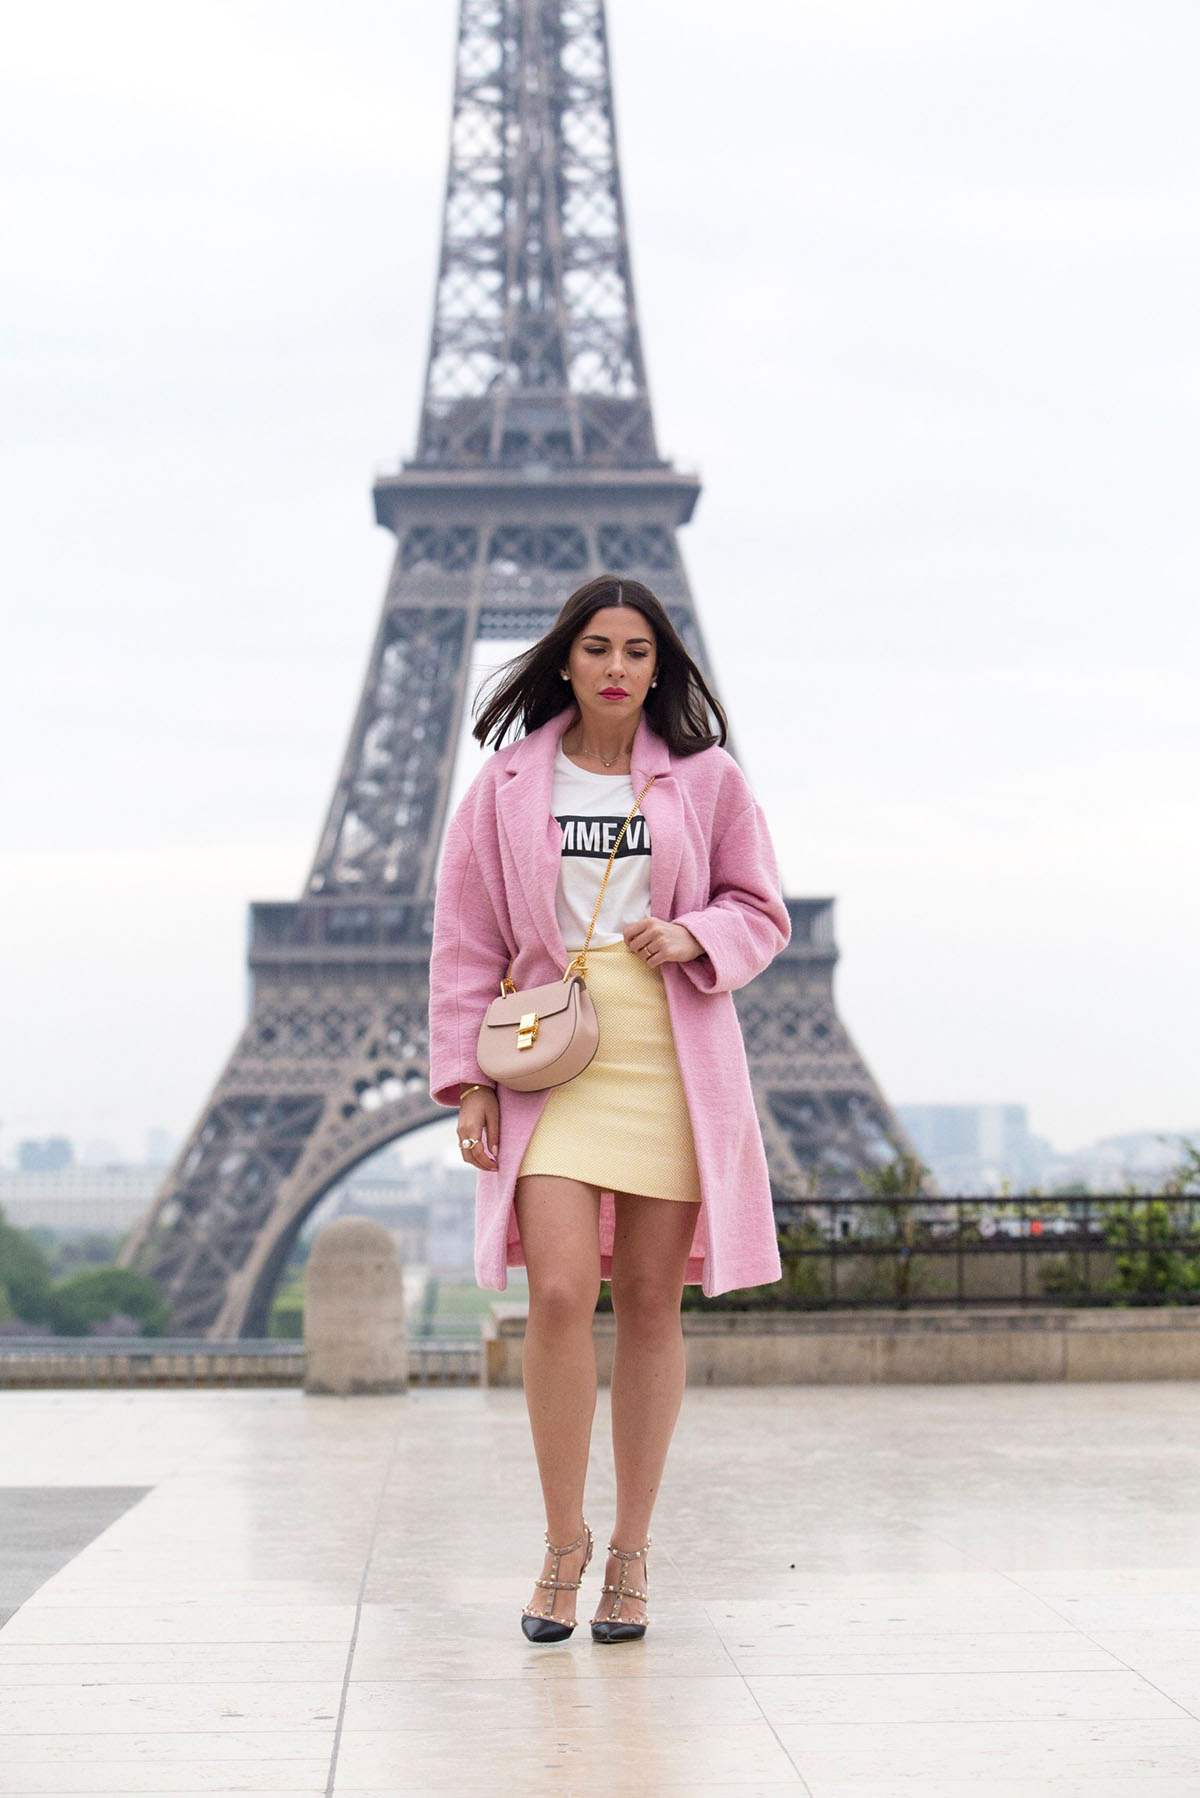 Chanel vintage yellow skirt and pink coat outfit b y Stella Asteria Fashion & Lifestyle Blogger